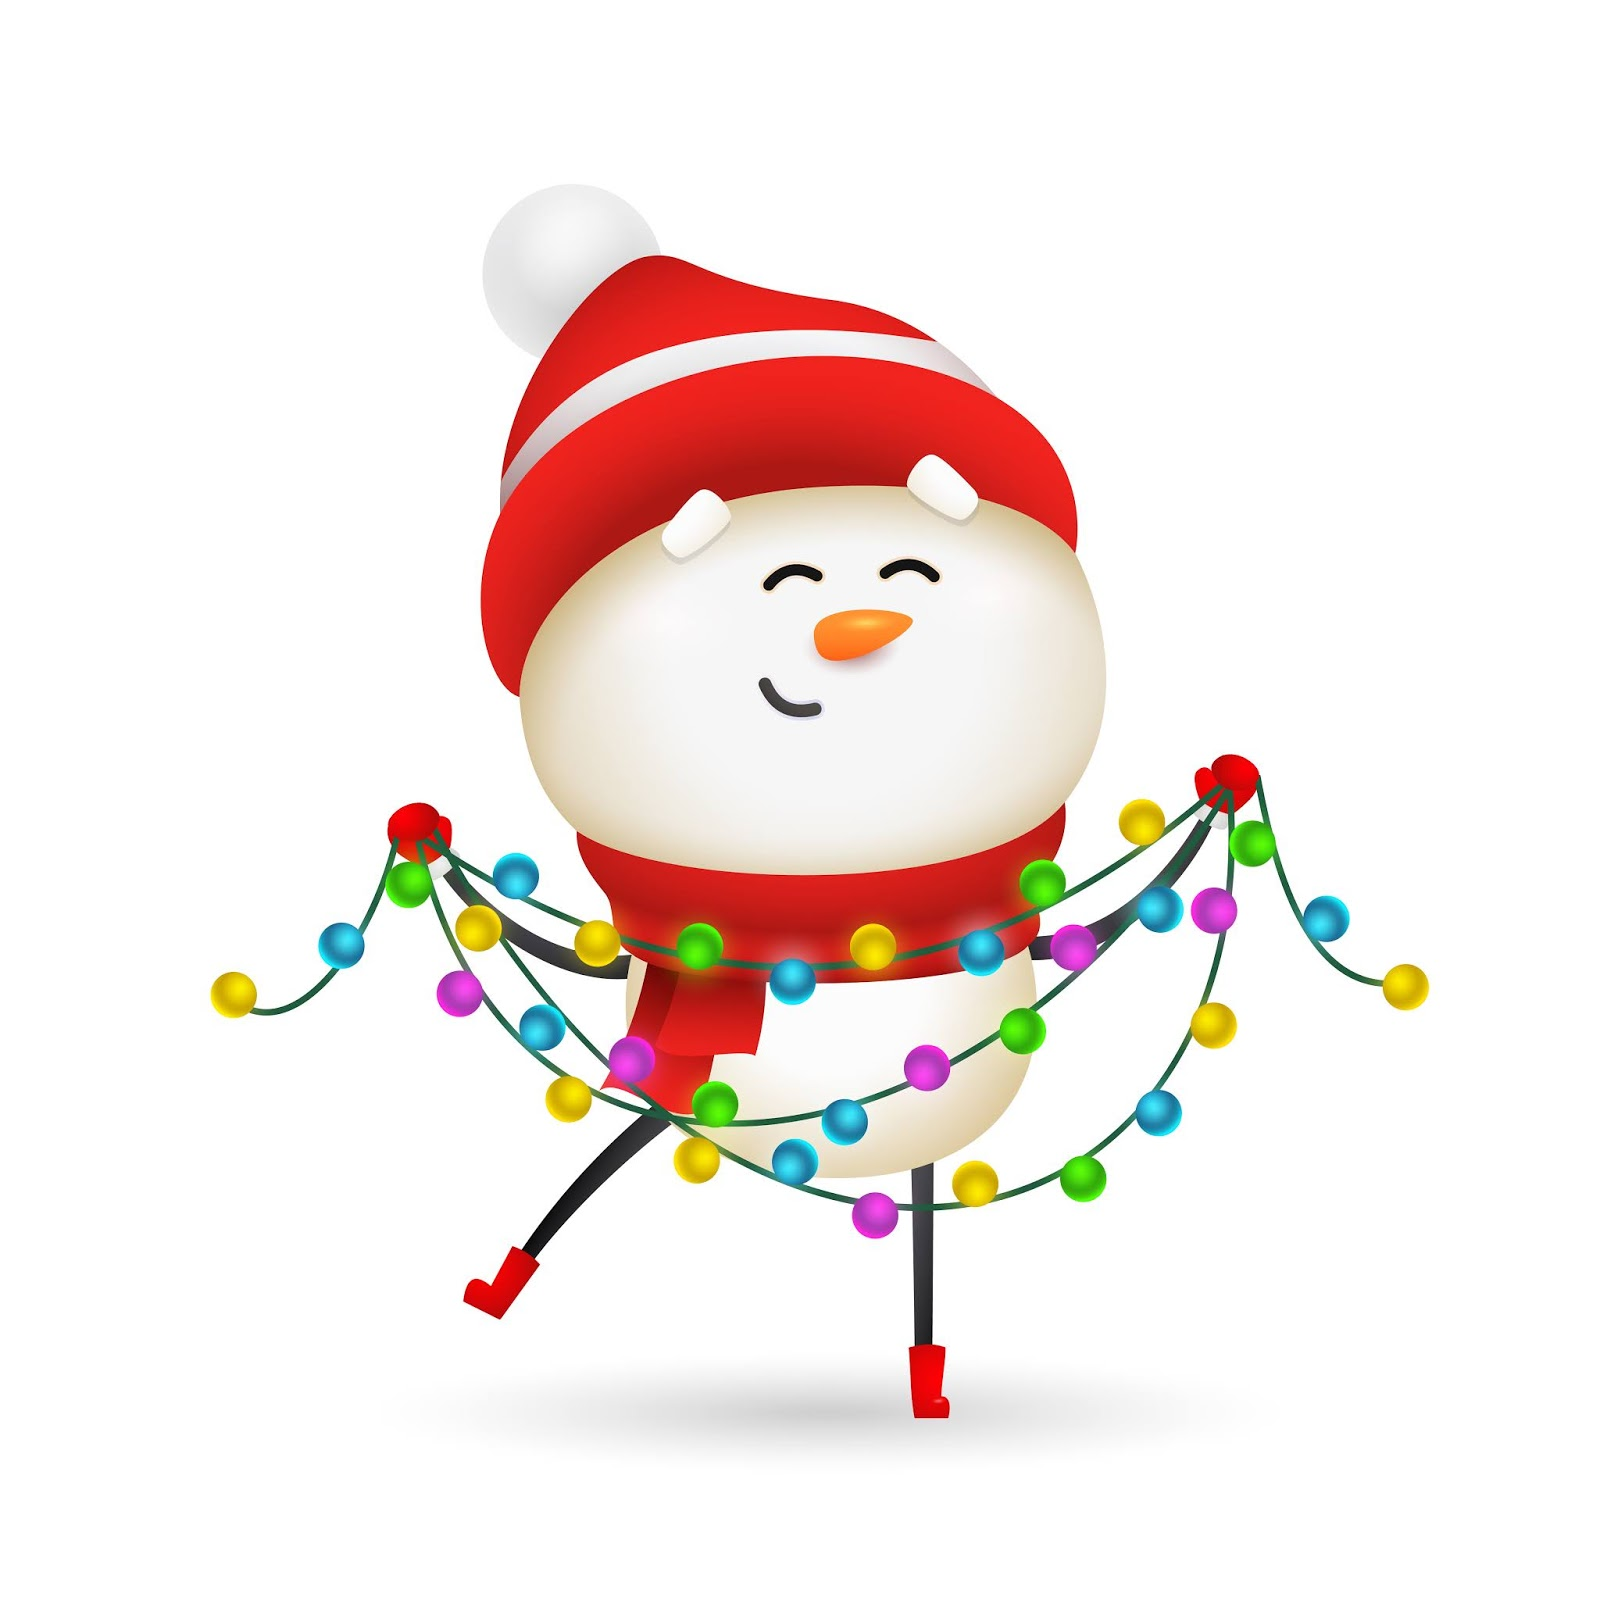 Happy Snowman Celebrating Christmas Free Download Vector CDR, AI, EPS and PNG Formats